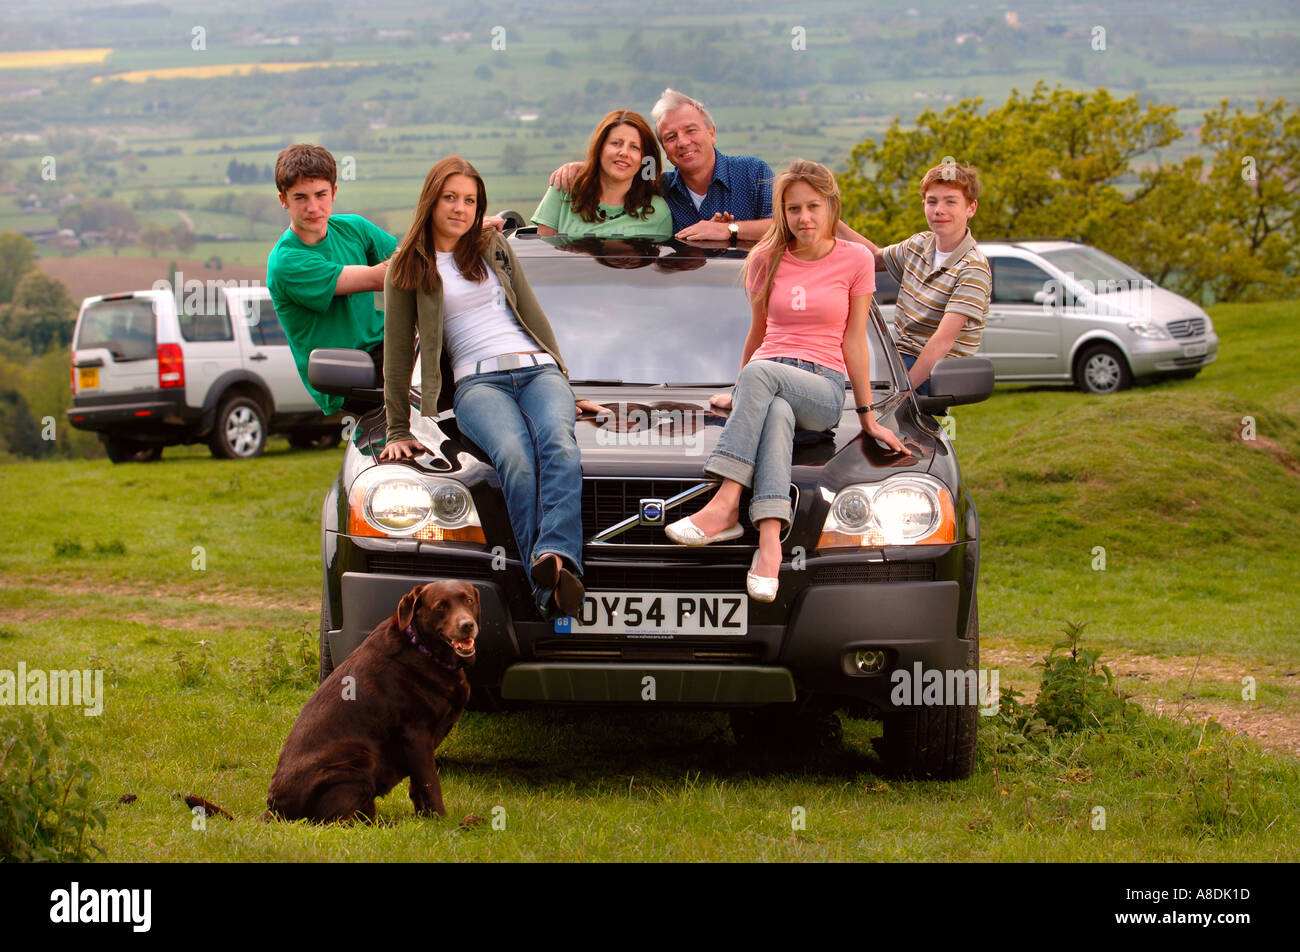 A FAMILY WITH TEENAGE CHILDREN SITTING ON A VOLVO XC90 UK - Stock Image